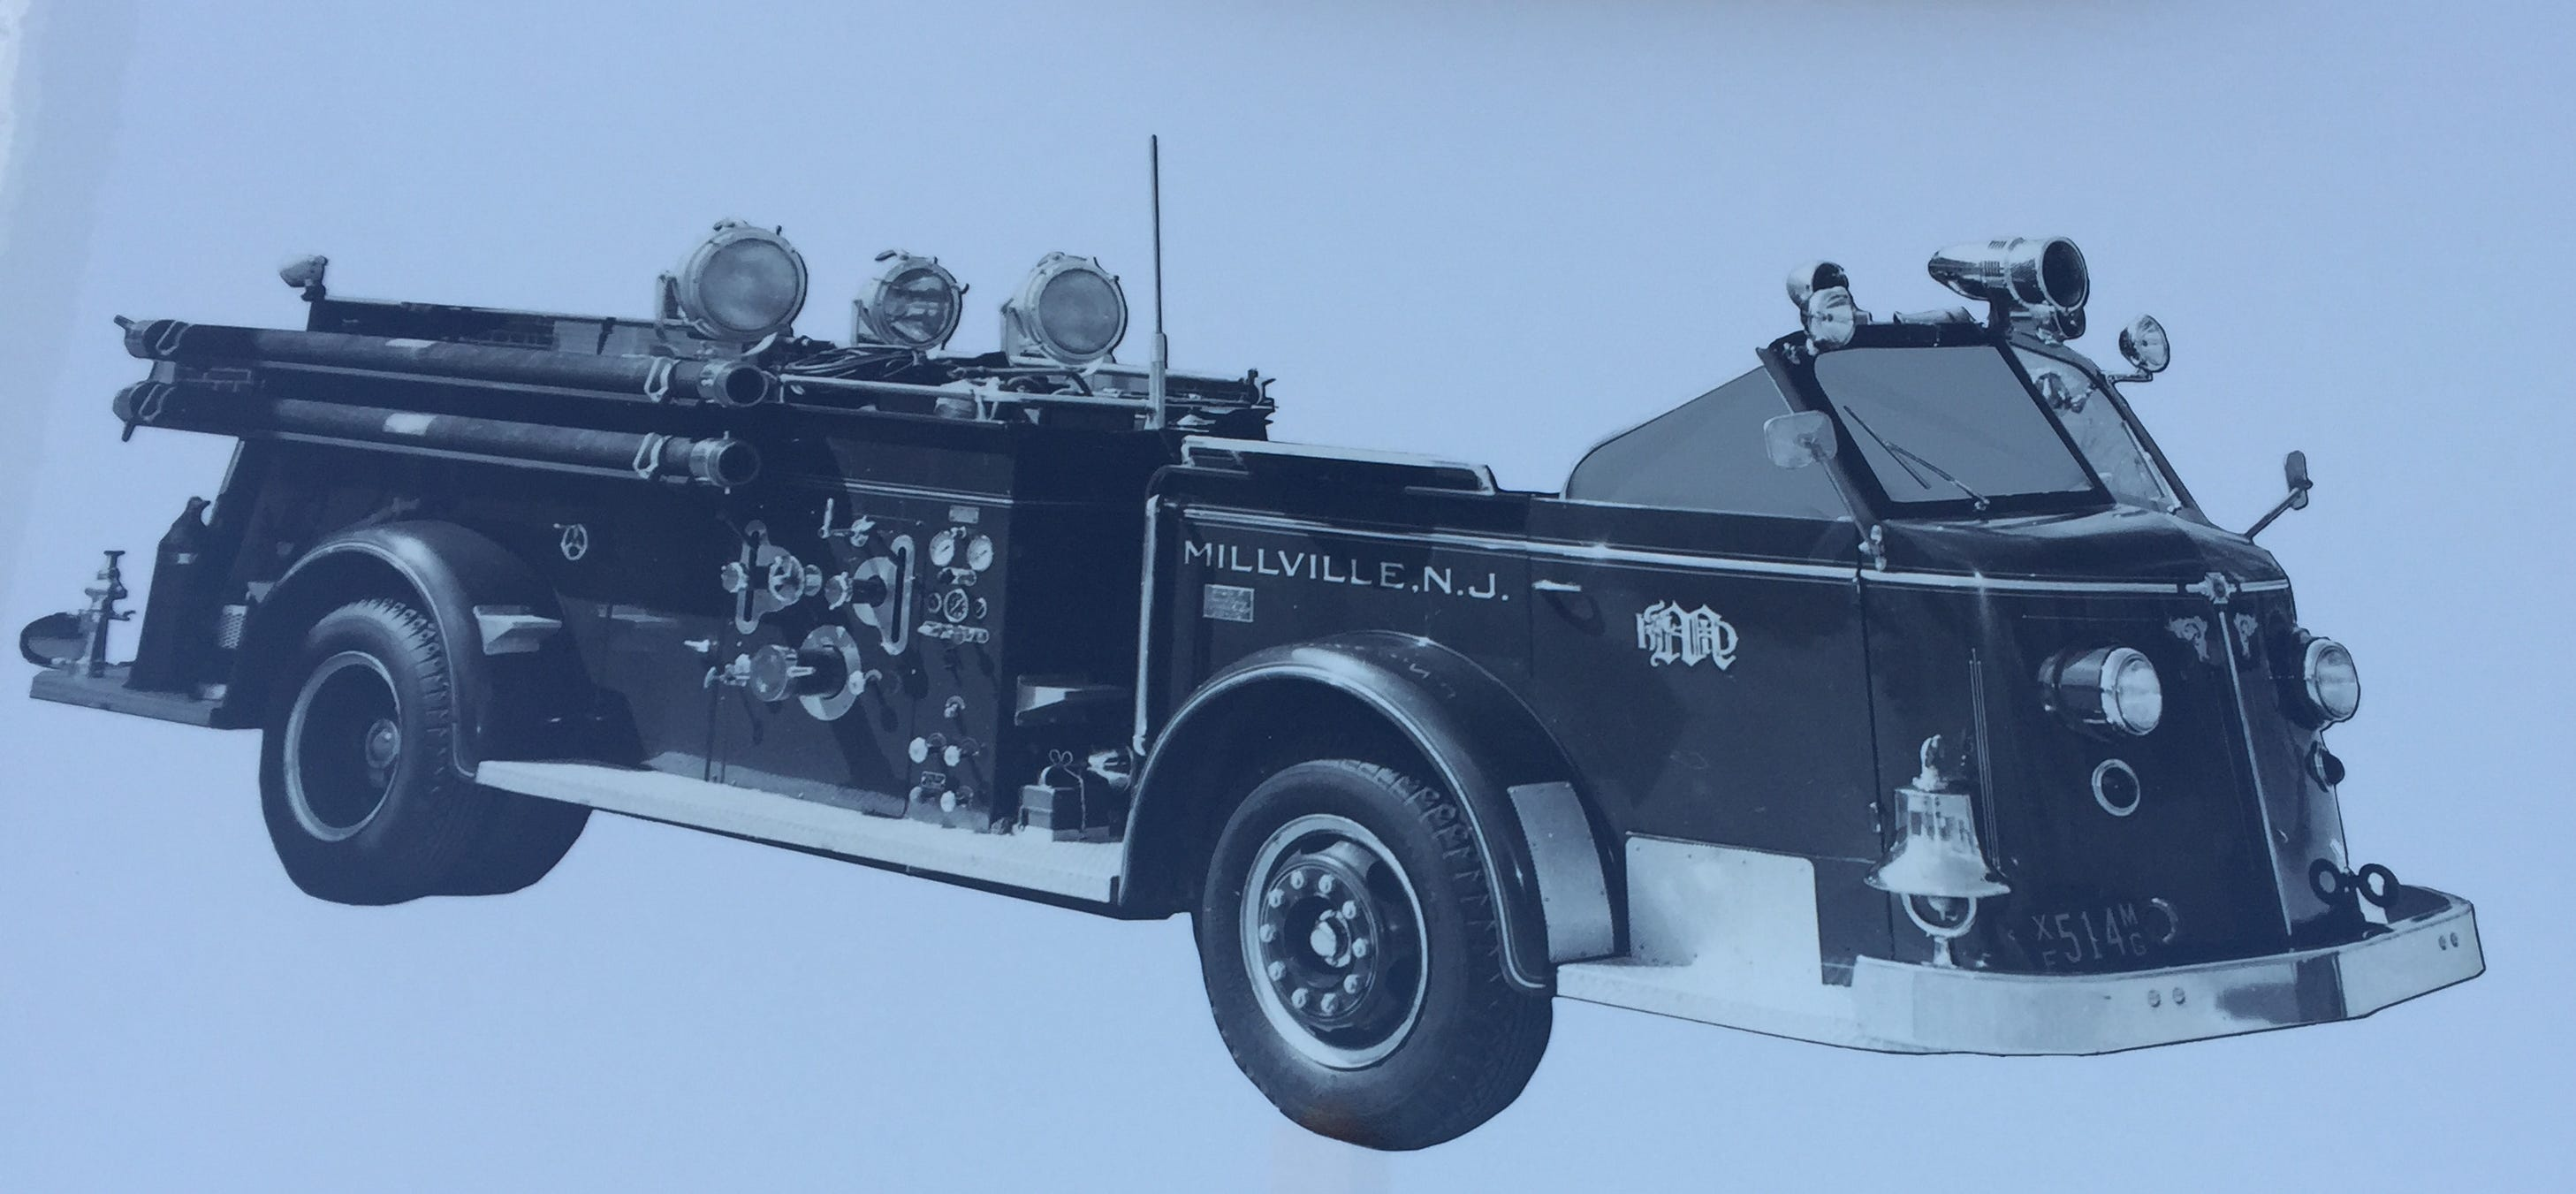 Millville Fire Department's newest engine remembers one of its predecessor with this decal. Notice the open cab.